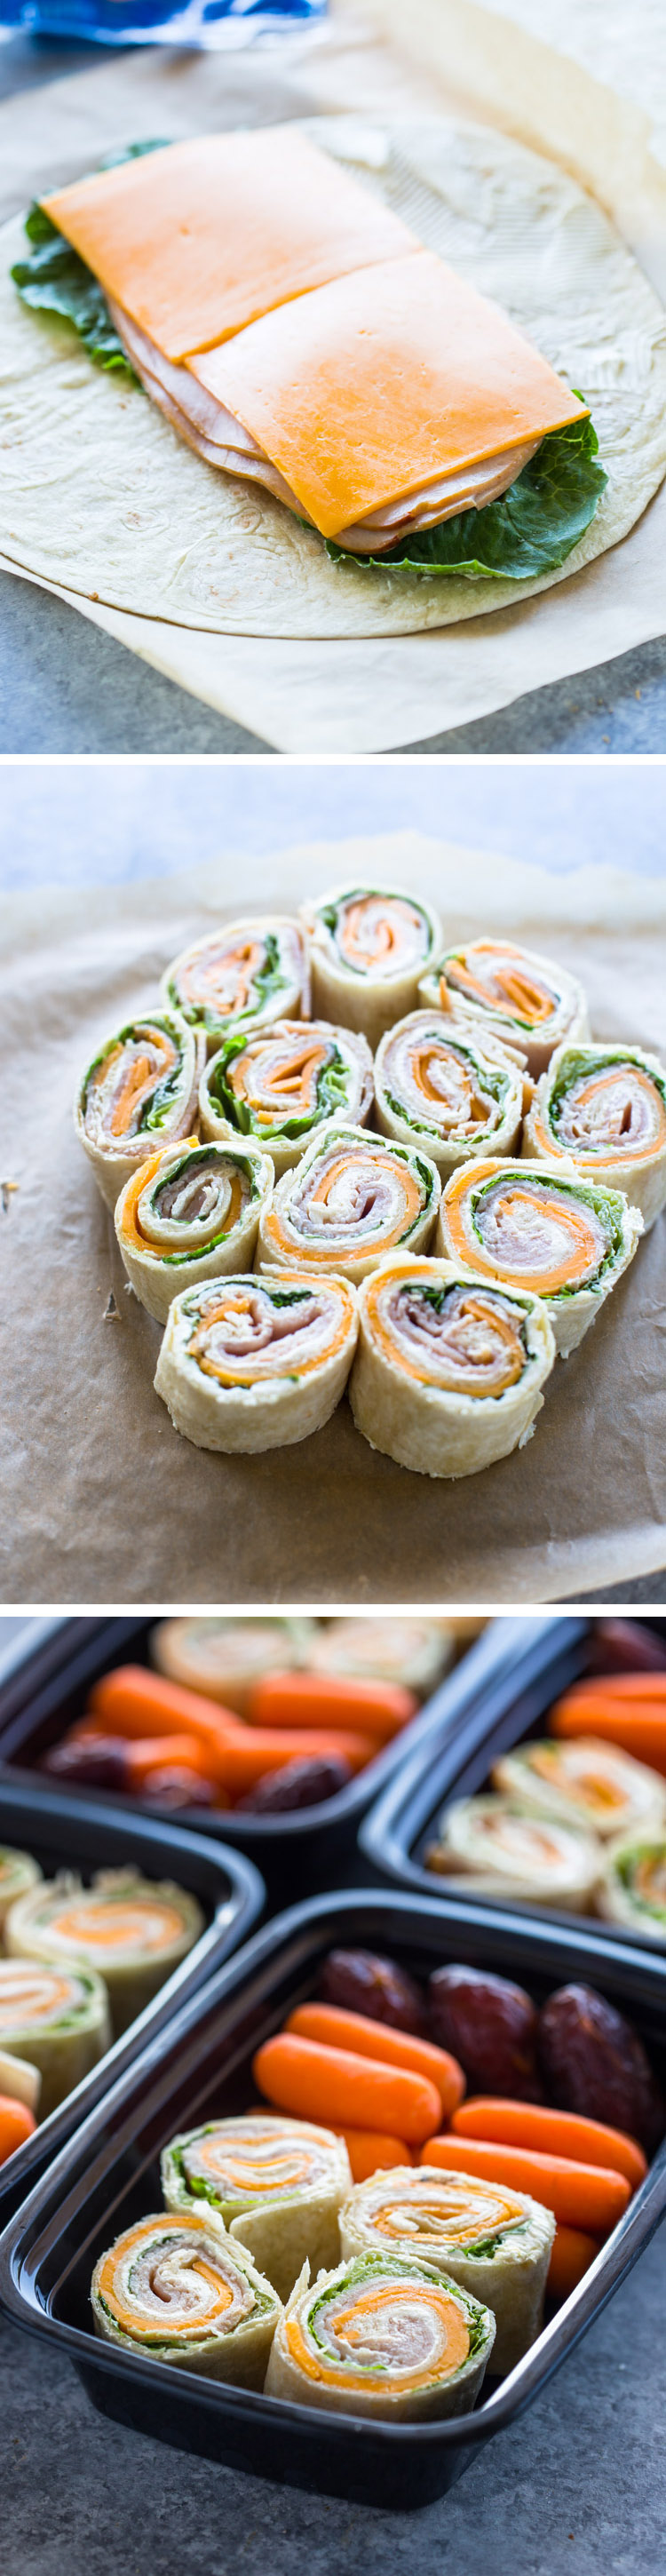 Turkey and Cheese Pinwheels (Meal-Prep Idea)